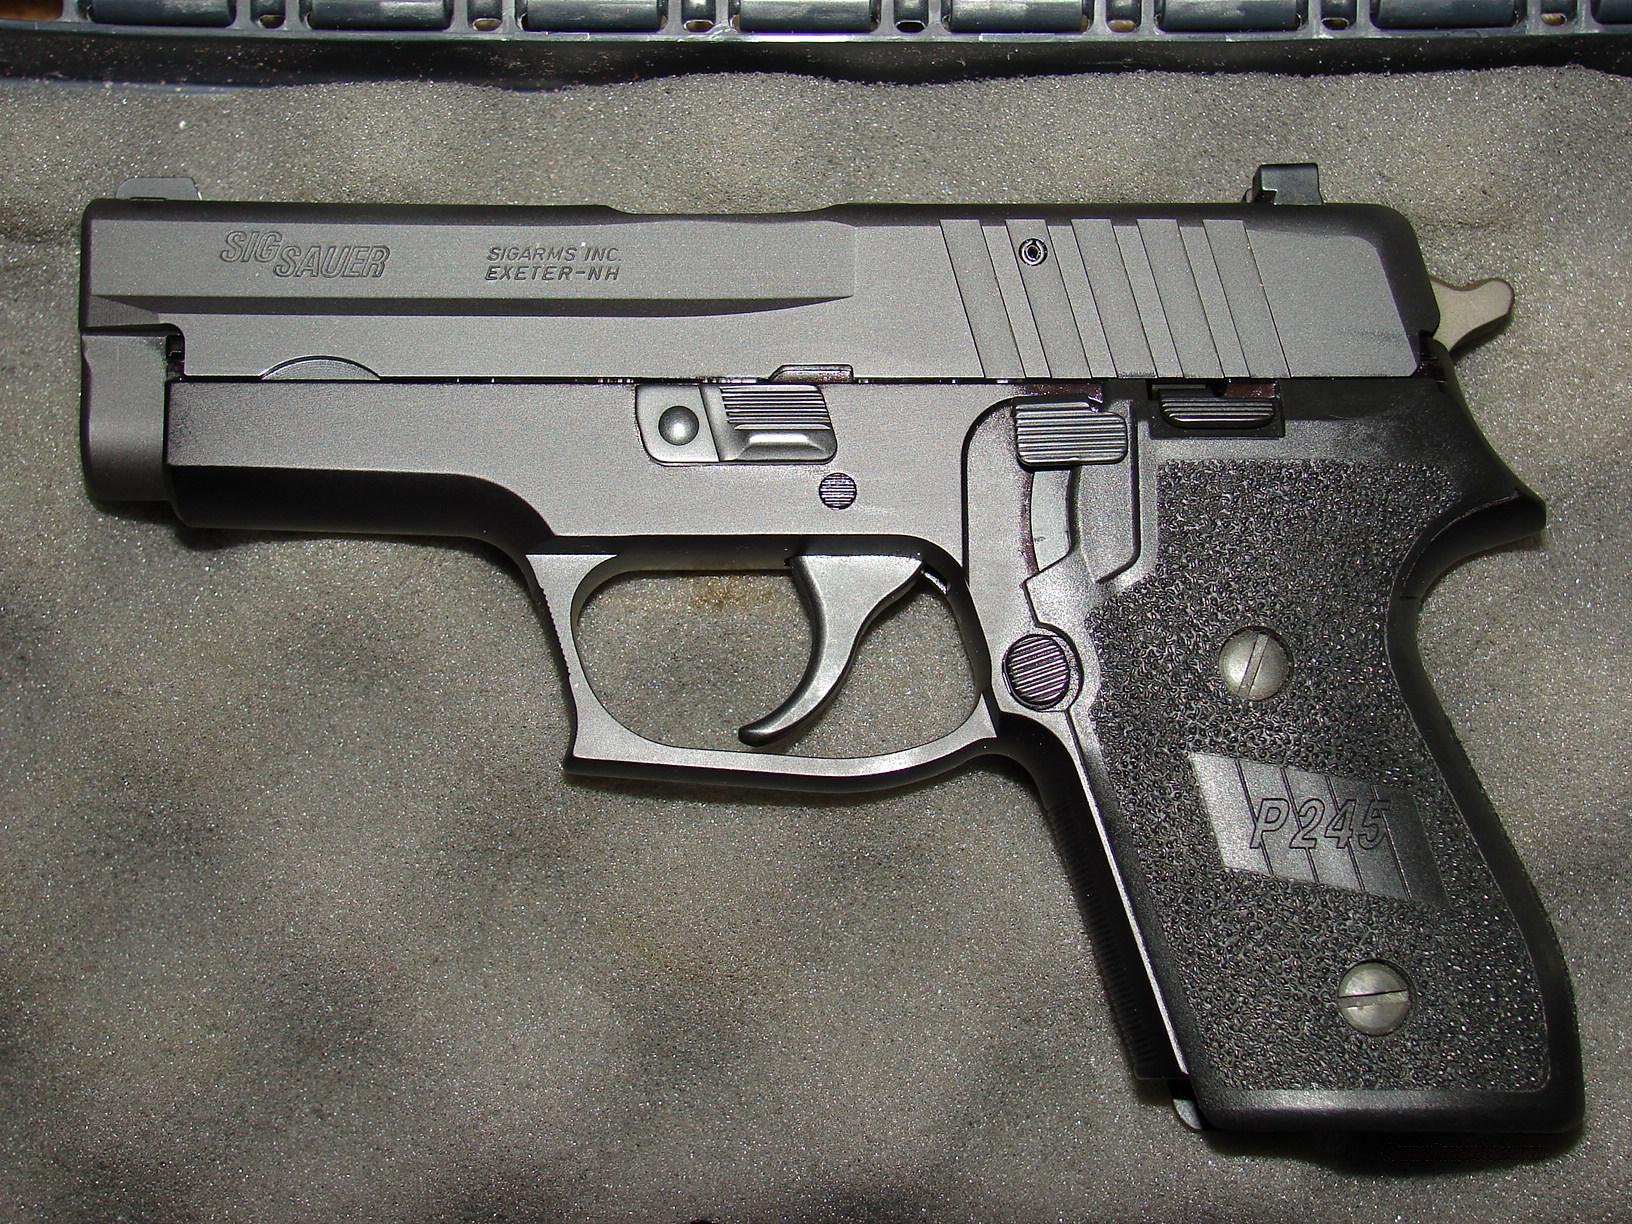 SIG-Sauer P245 pistol (Germany).45 ACP w/ 3 Mags  Guns > Pistols > Sig - Sauer/Sigarms Pistols > Other